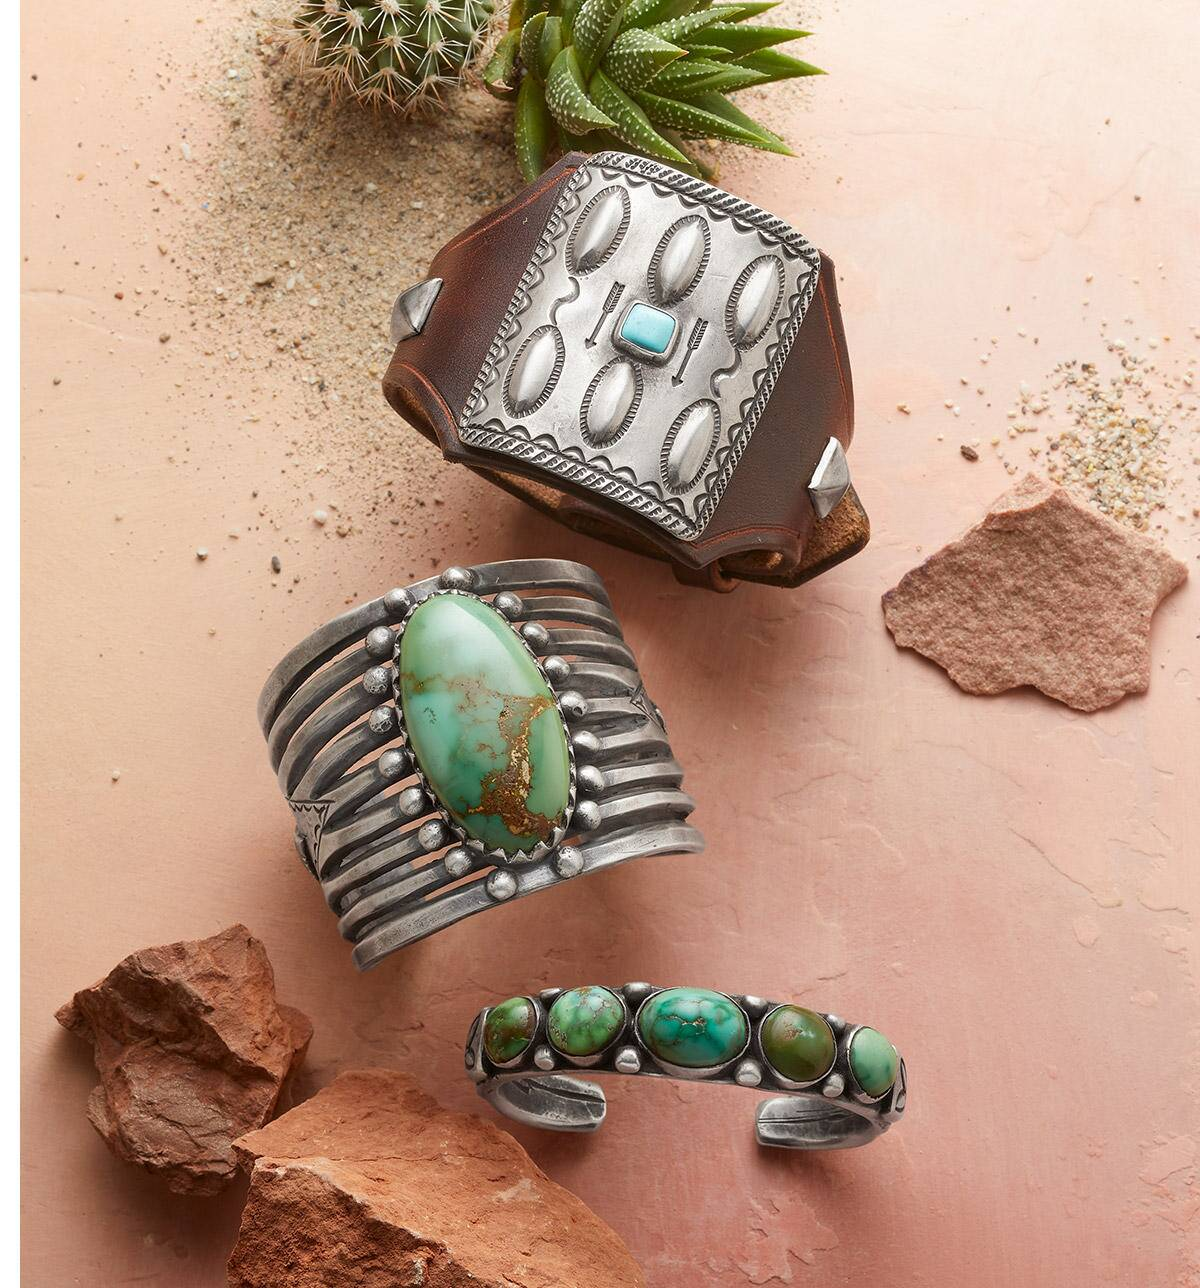 Our Heritage Jewelry